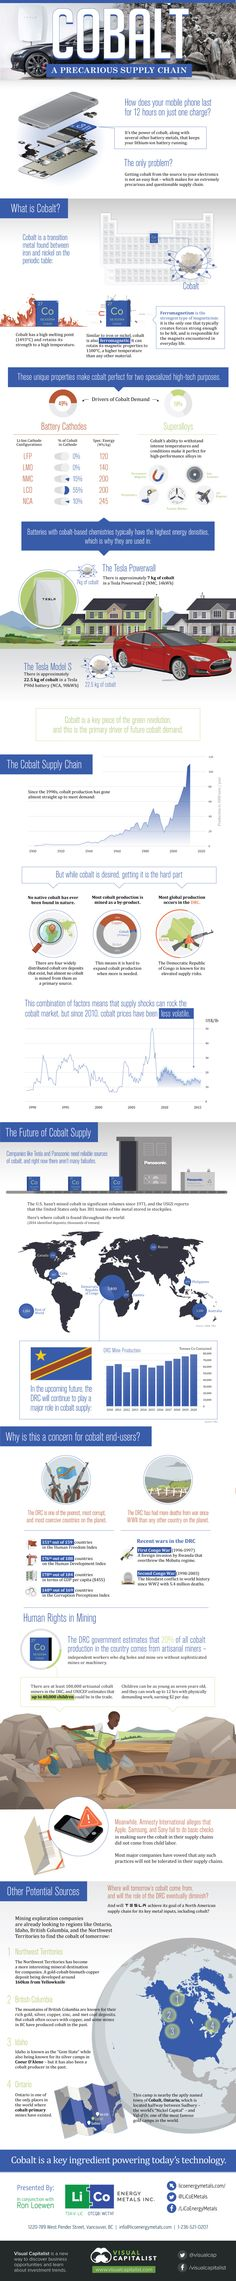 Cobalt: A Precarious Supply Chain Green Technology, World Economic Forum, Energy Use, Global Economy, Sustainable Development, Supply Chain, Data Visualization, Natural Disasters, Renewable Energy